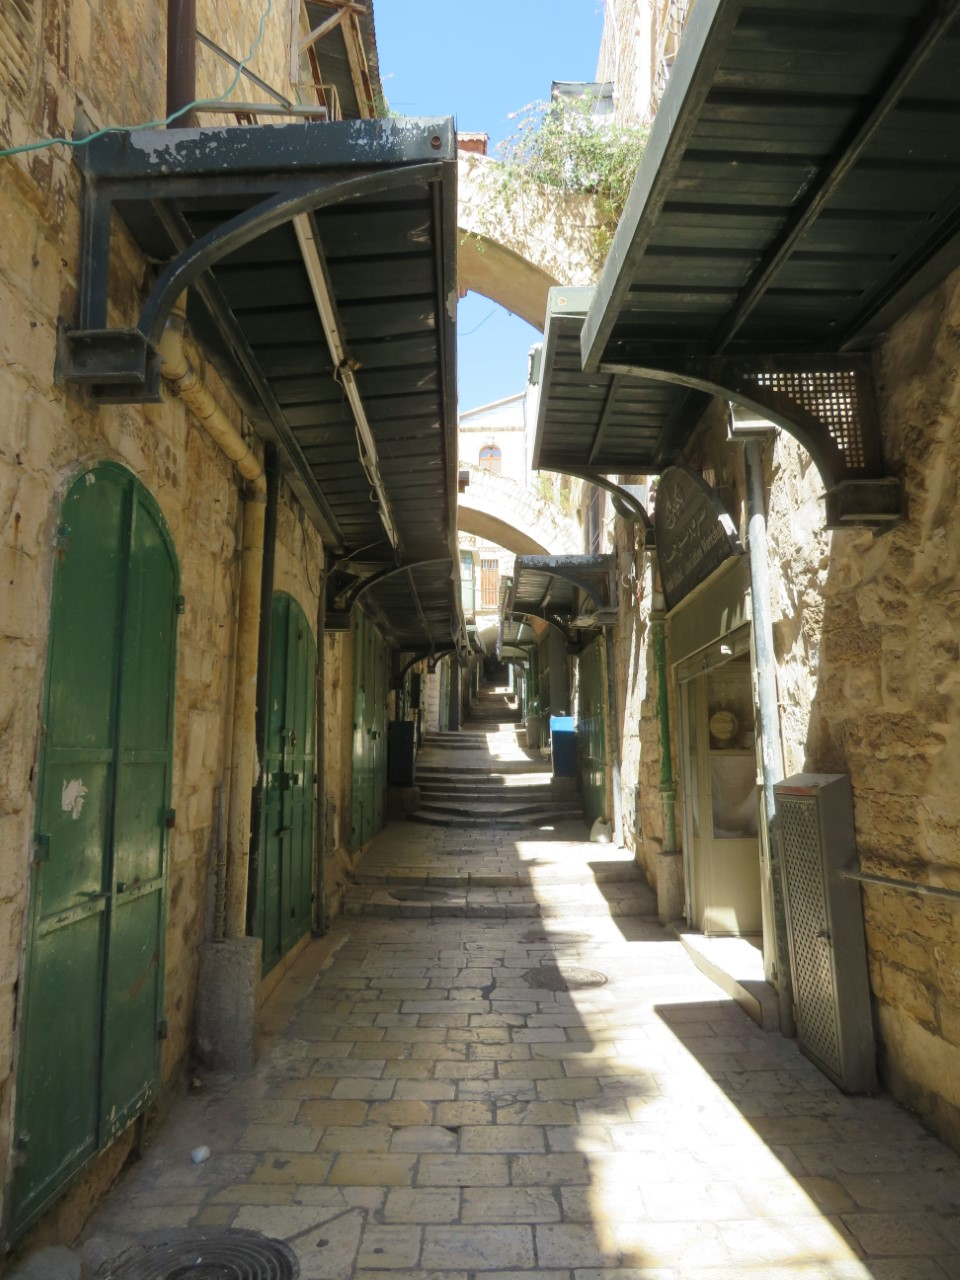 Usually teeming with tourists and pilgrims, the Via Dolorosa in Jerusalem's Old City is empty due to the coronavirus pandemic.